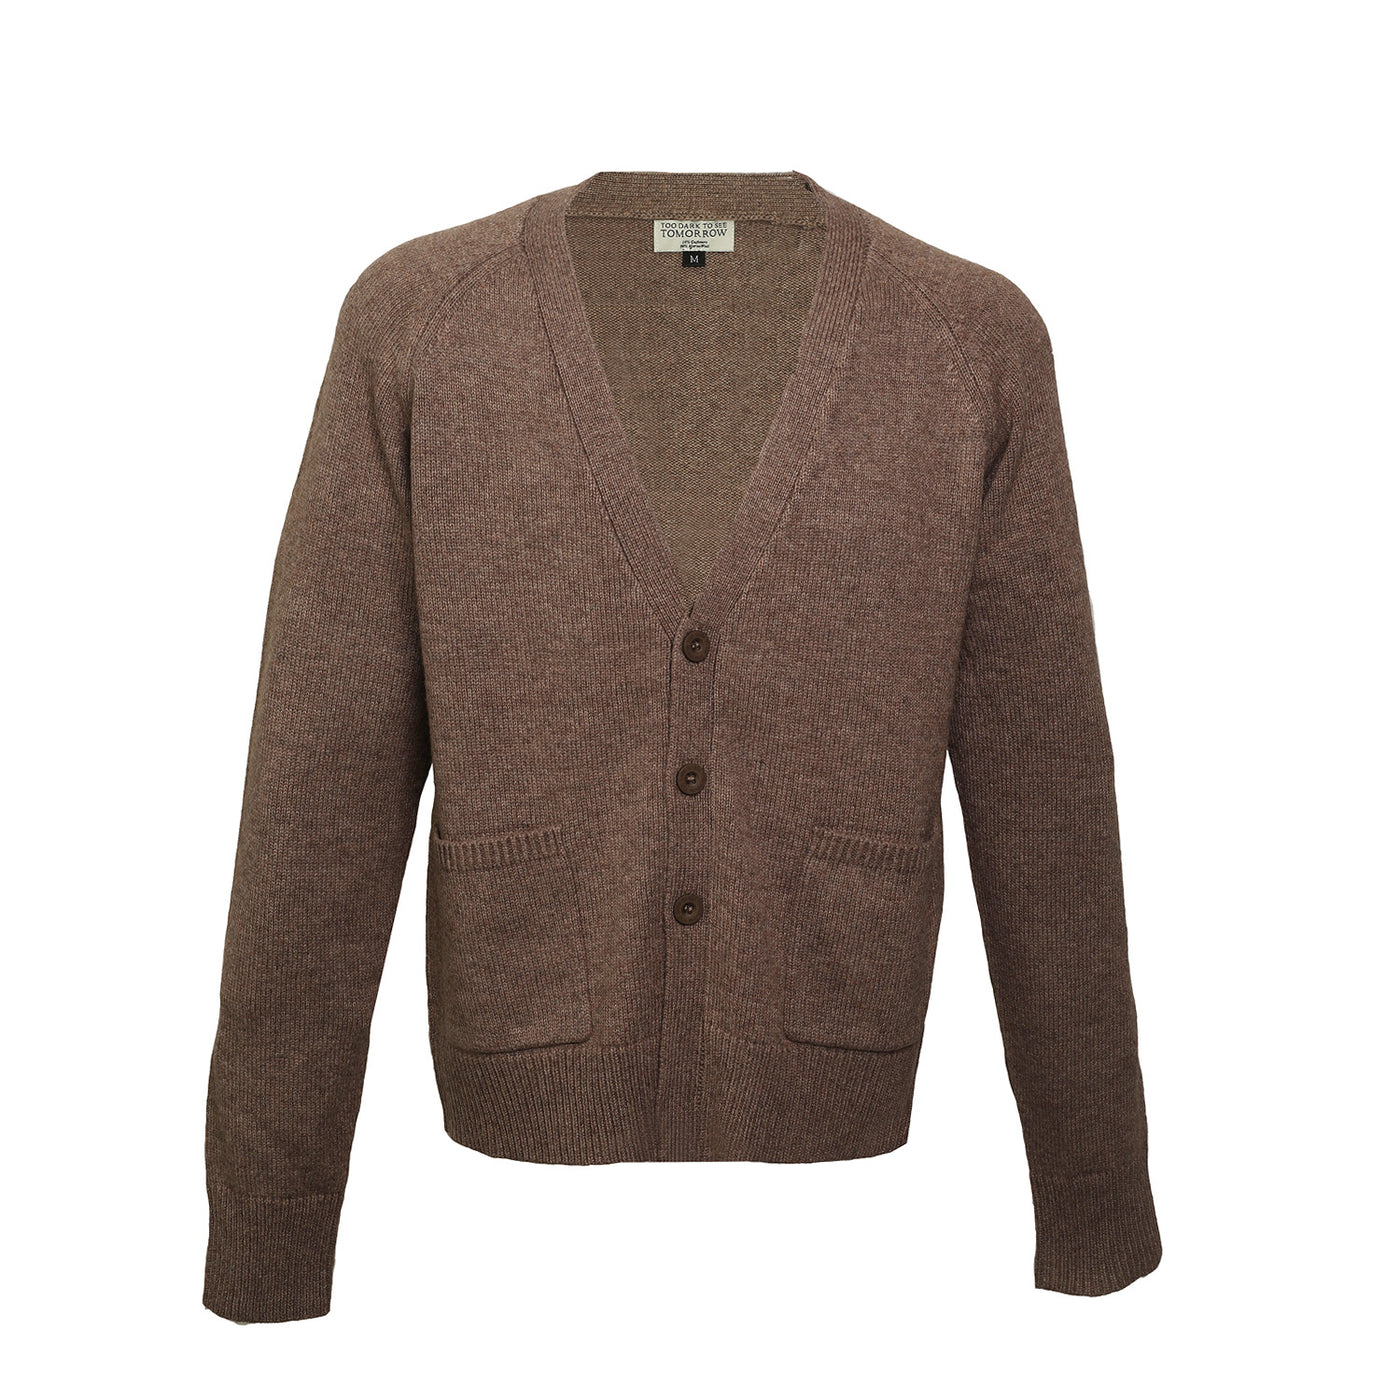 BROWN WOOL & CASHMERE CARDIGAN